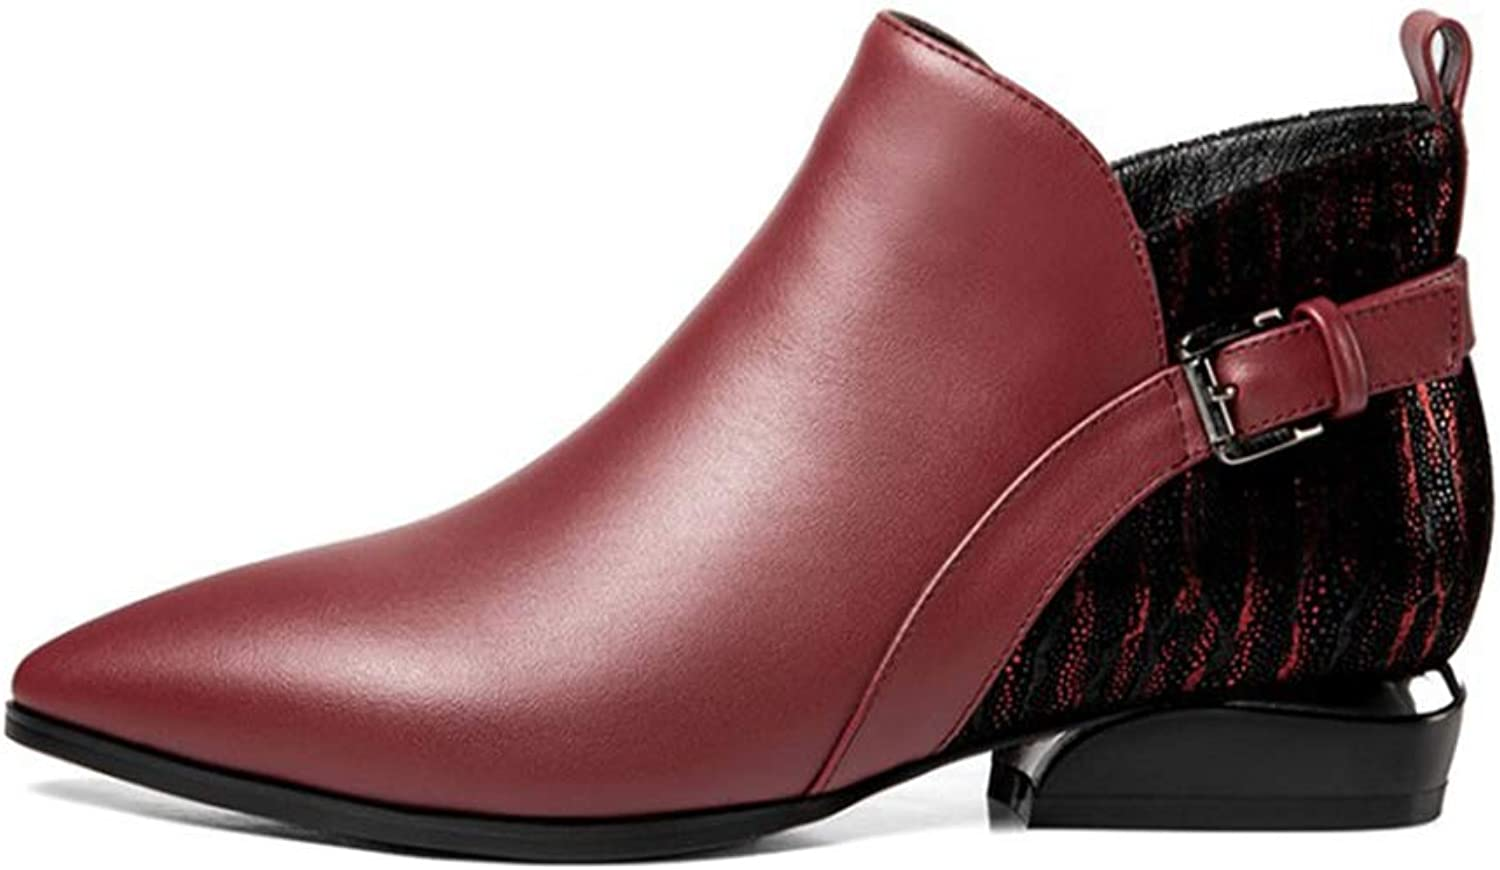 Women's Booties, Fall Winter Block Heel Square Toe Ankle Boots Party Evening Fashion Boots Ladies Leather Comfortable Martin Boots (color   A, Size   39)